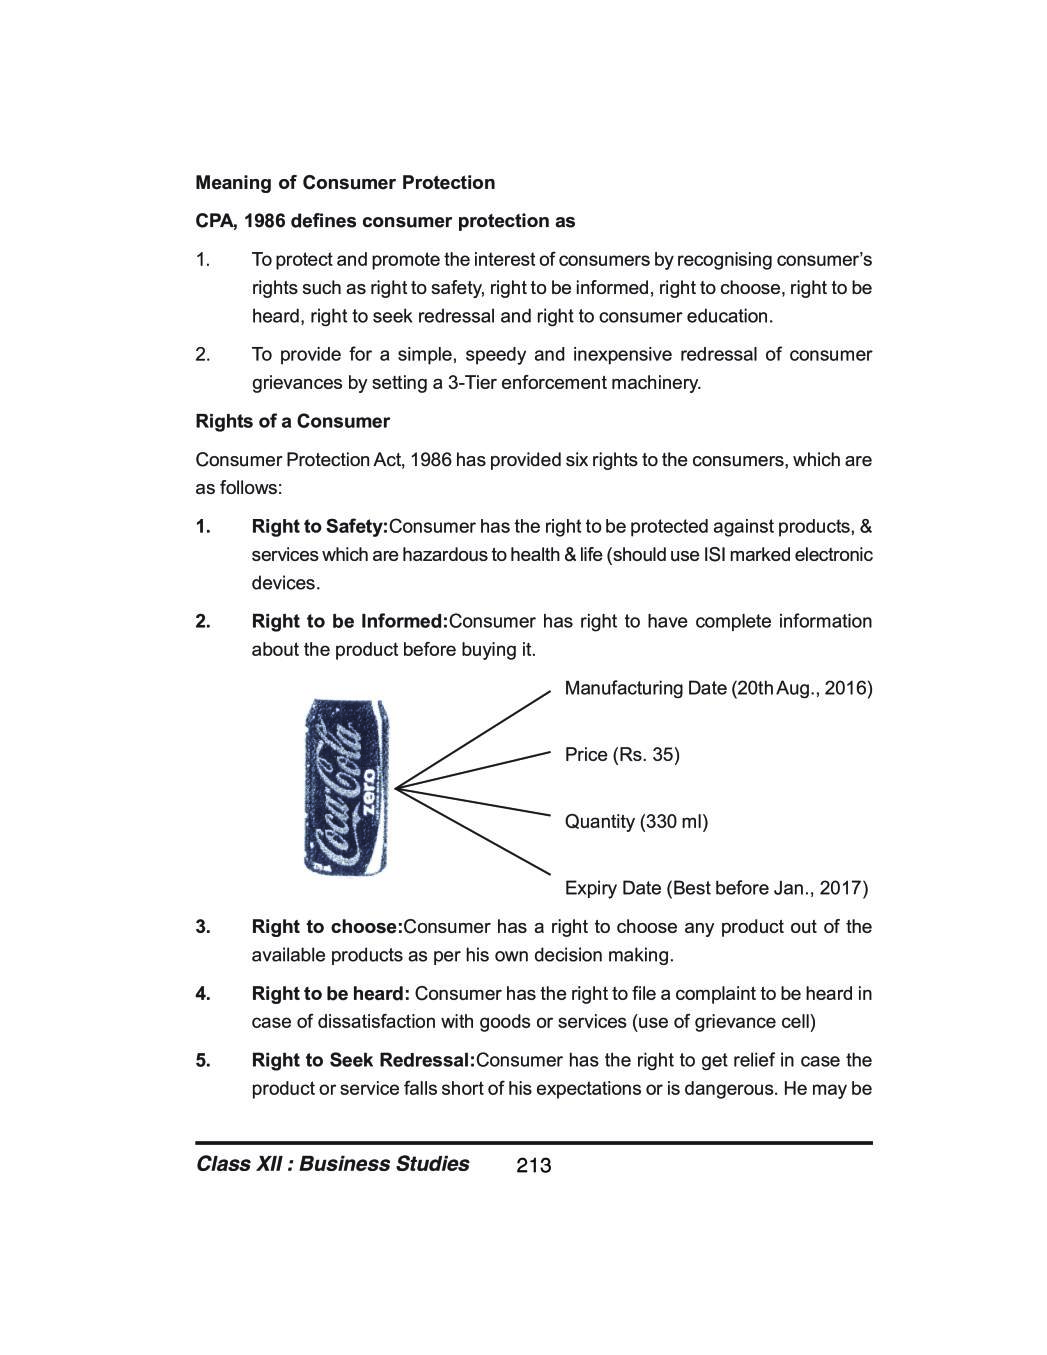 Class 12 Business Studies Notes for Consumer Protection – AglaSem